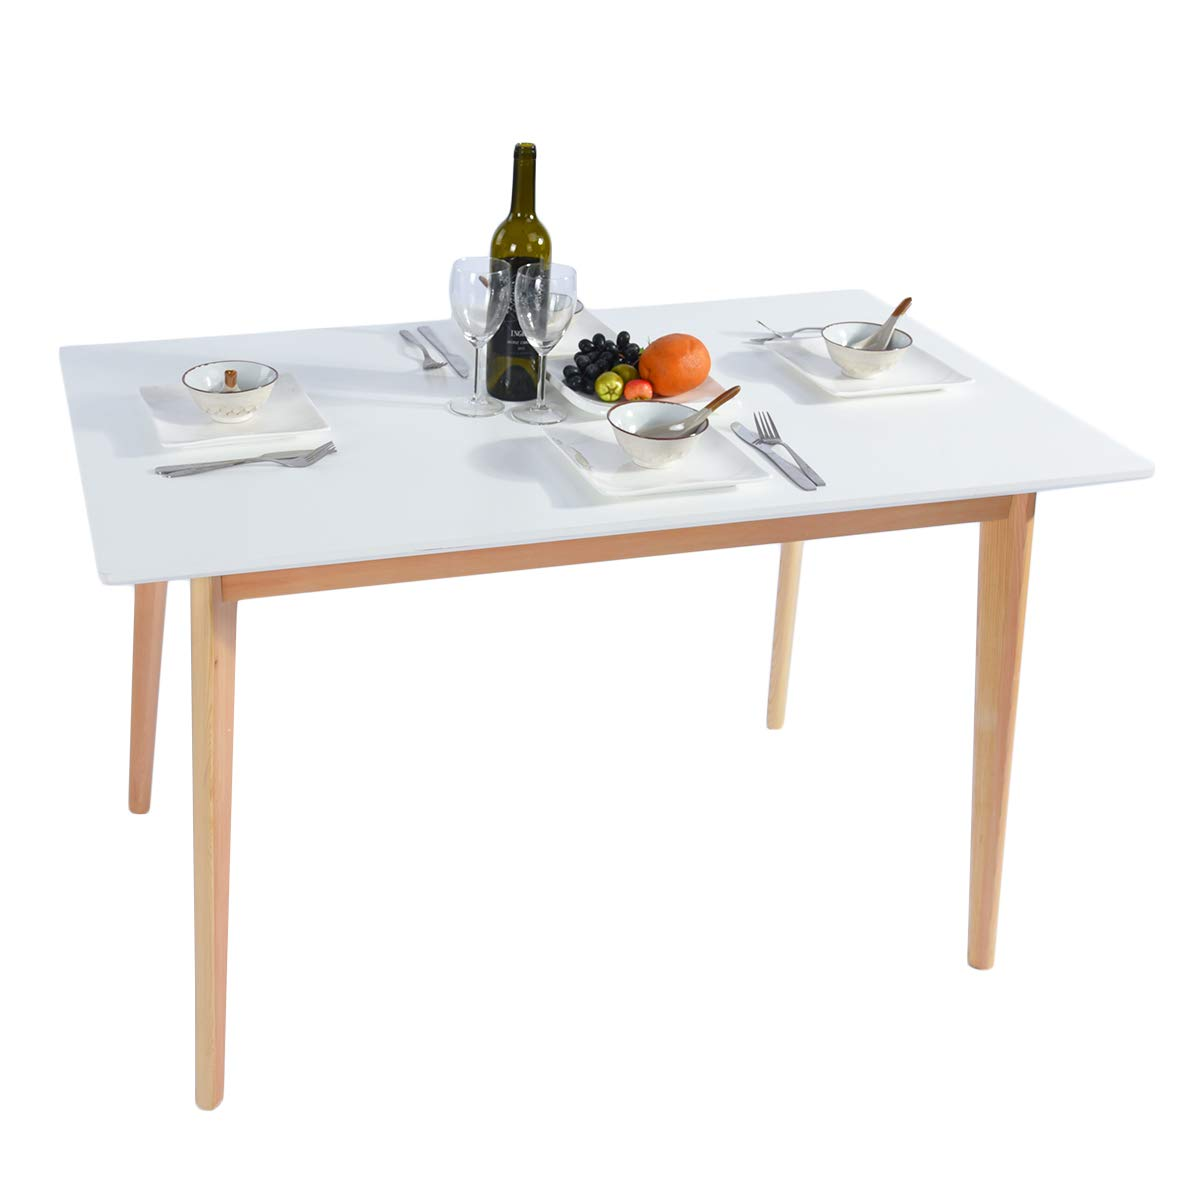 GreenForest Dining Table Mid Century Modern Rectangular Kitchen Leisure Table with Solid Wooden Legs 47.2'' x 27.6''x 30'', White by GreenForest